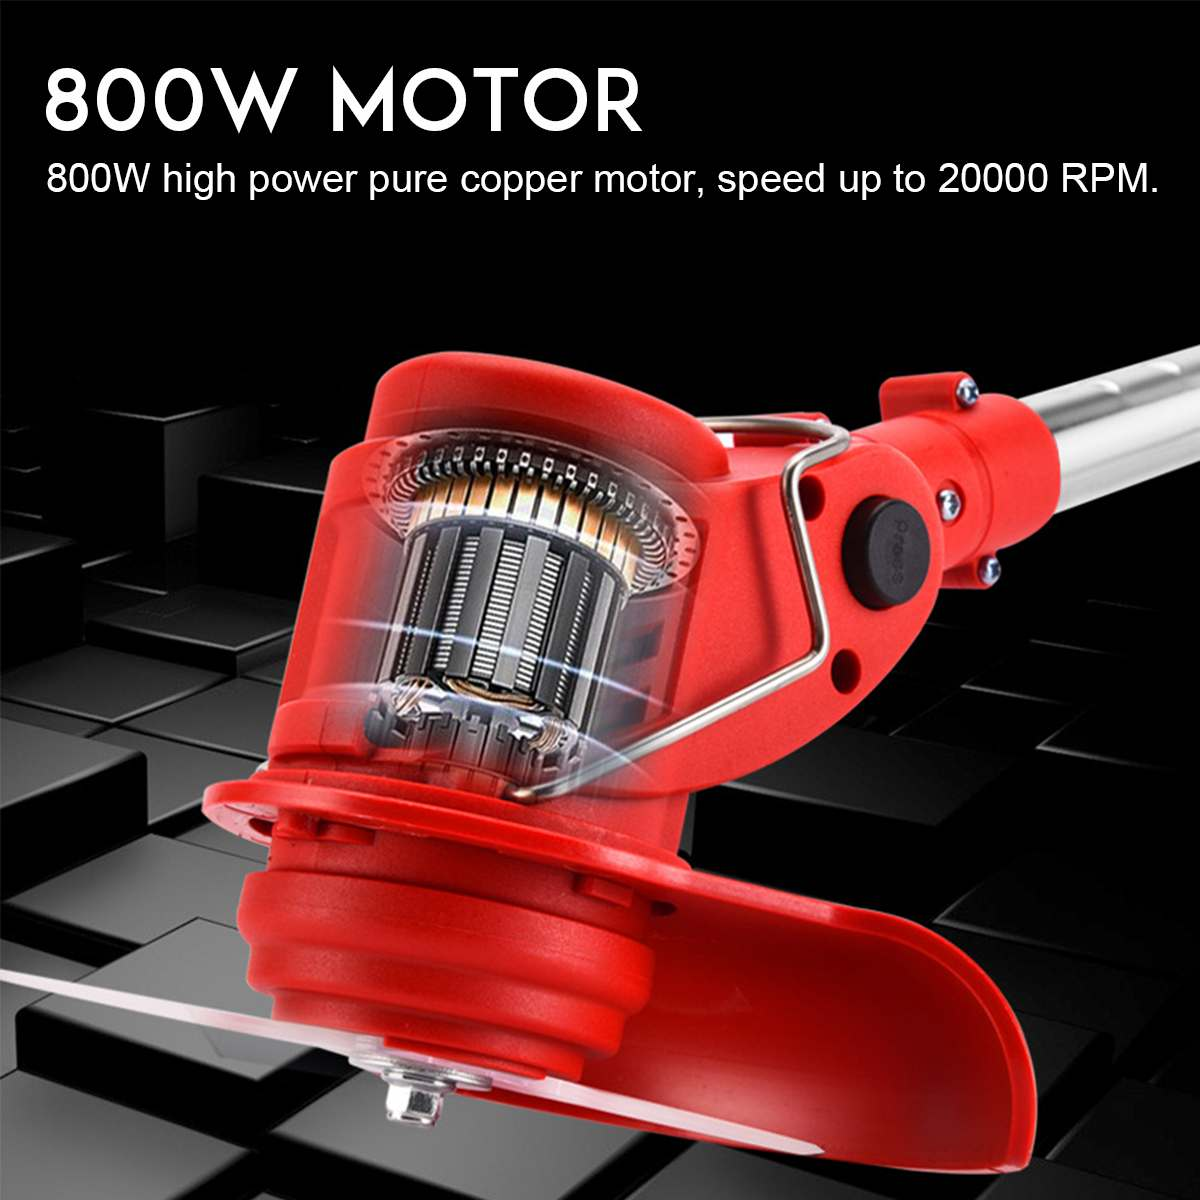 Tools : 24V Cordless Electric Grass Trimmer with 7Pcs Blade 6000mh Battery Adjustable Lawn Mower Home Push Lawnmower Garden Power Tool